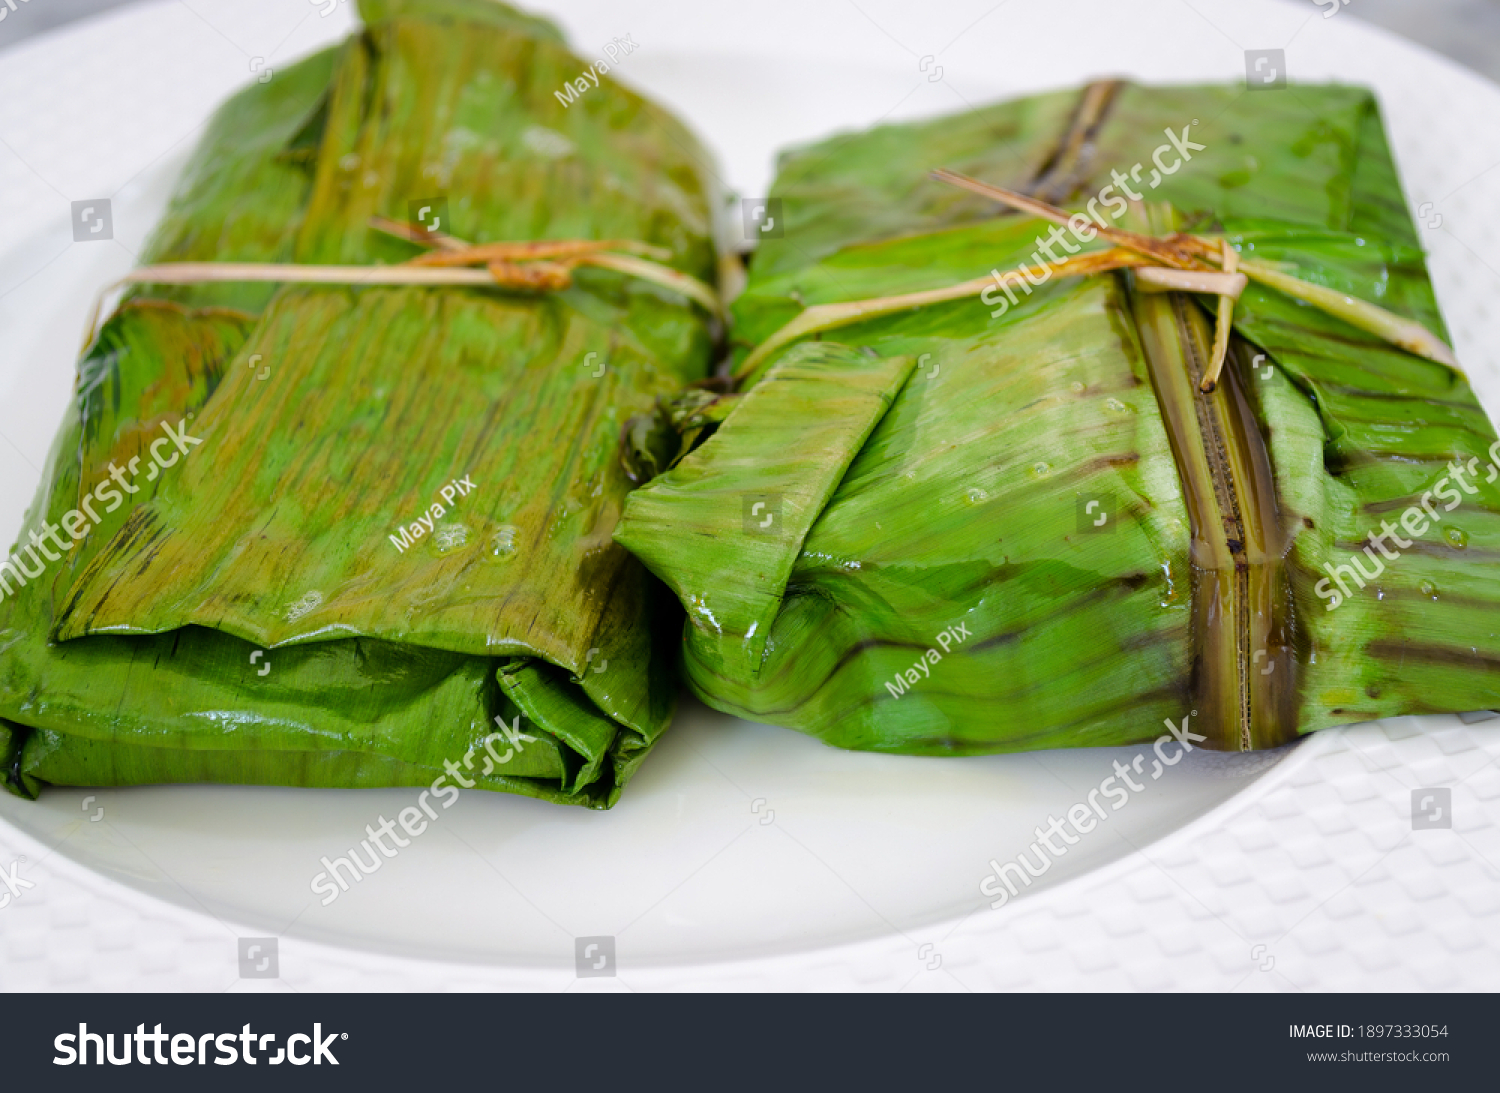 Closeup of fish covered and fried in banana leaf in traditional Kerala style (Meen Pollichathu)